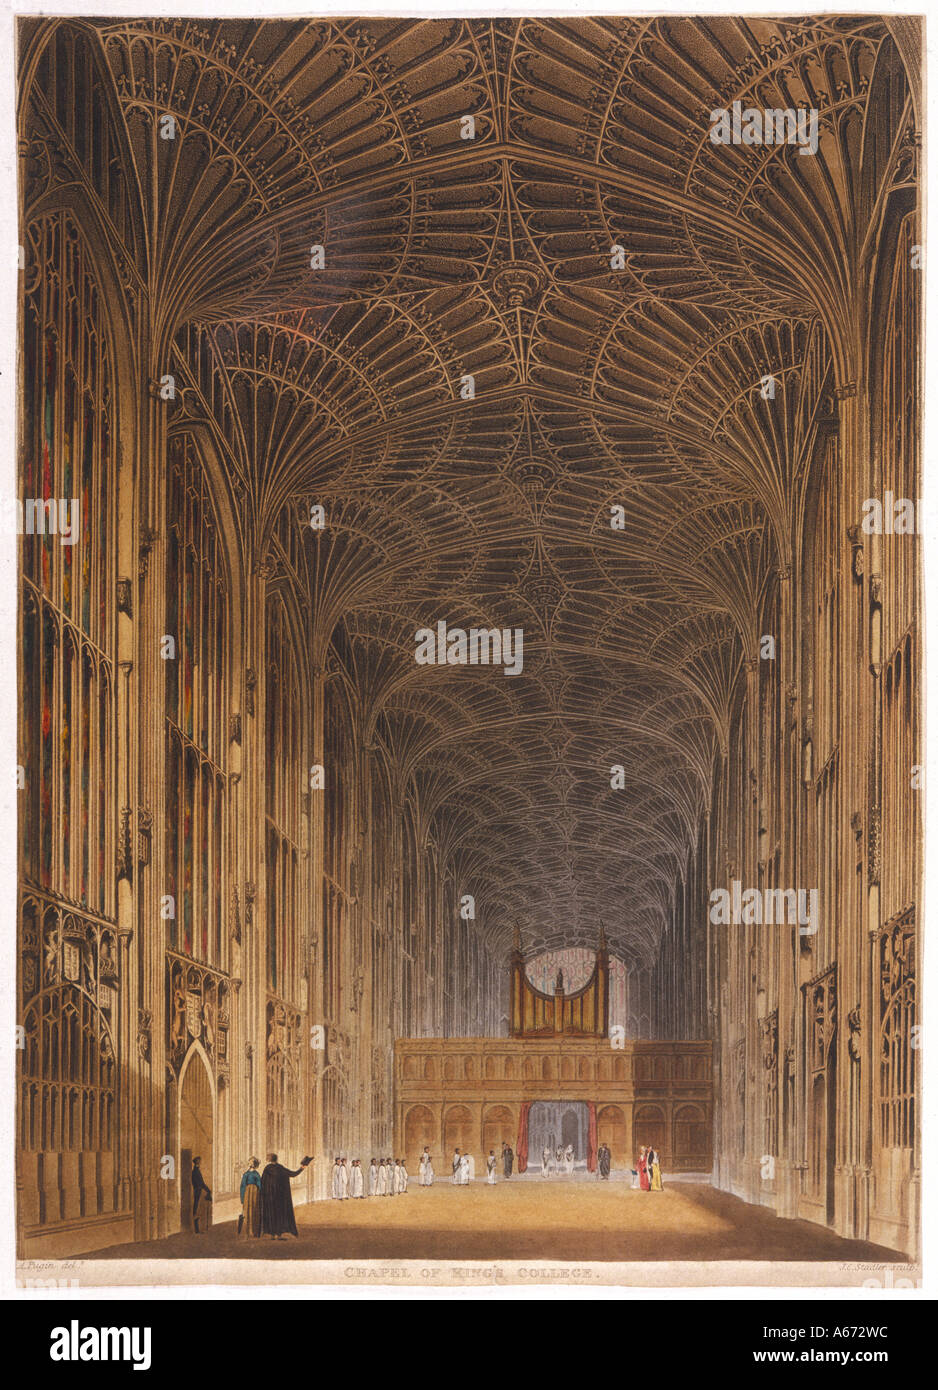 Kings Chapel Pugin C1820 Stock Photo